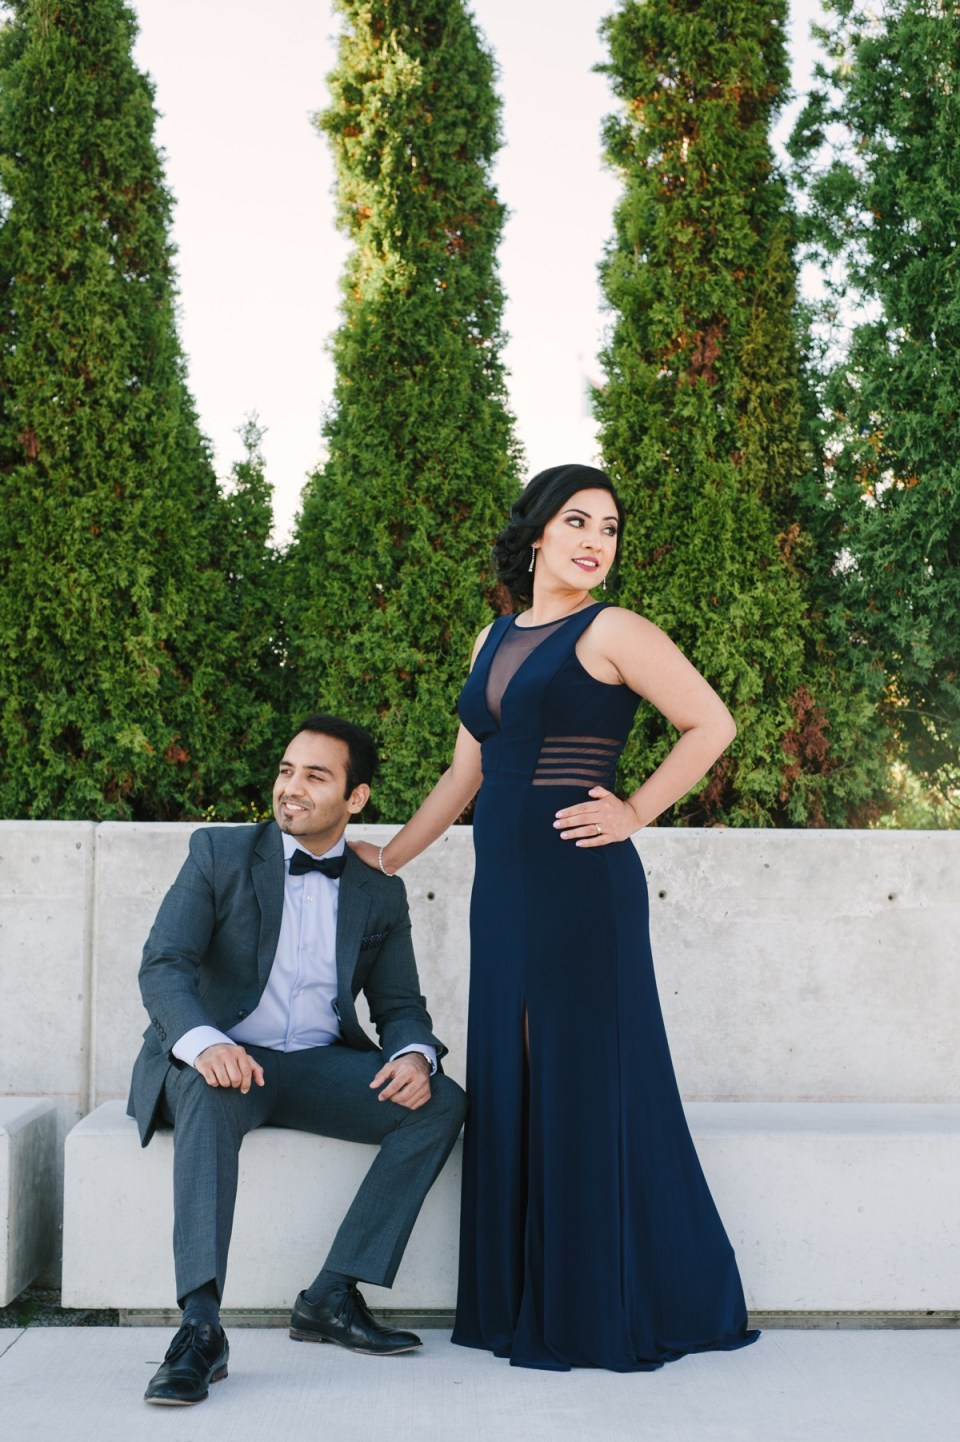 aga khan museum engagement session